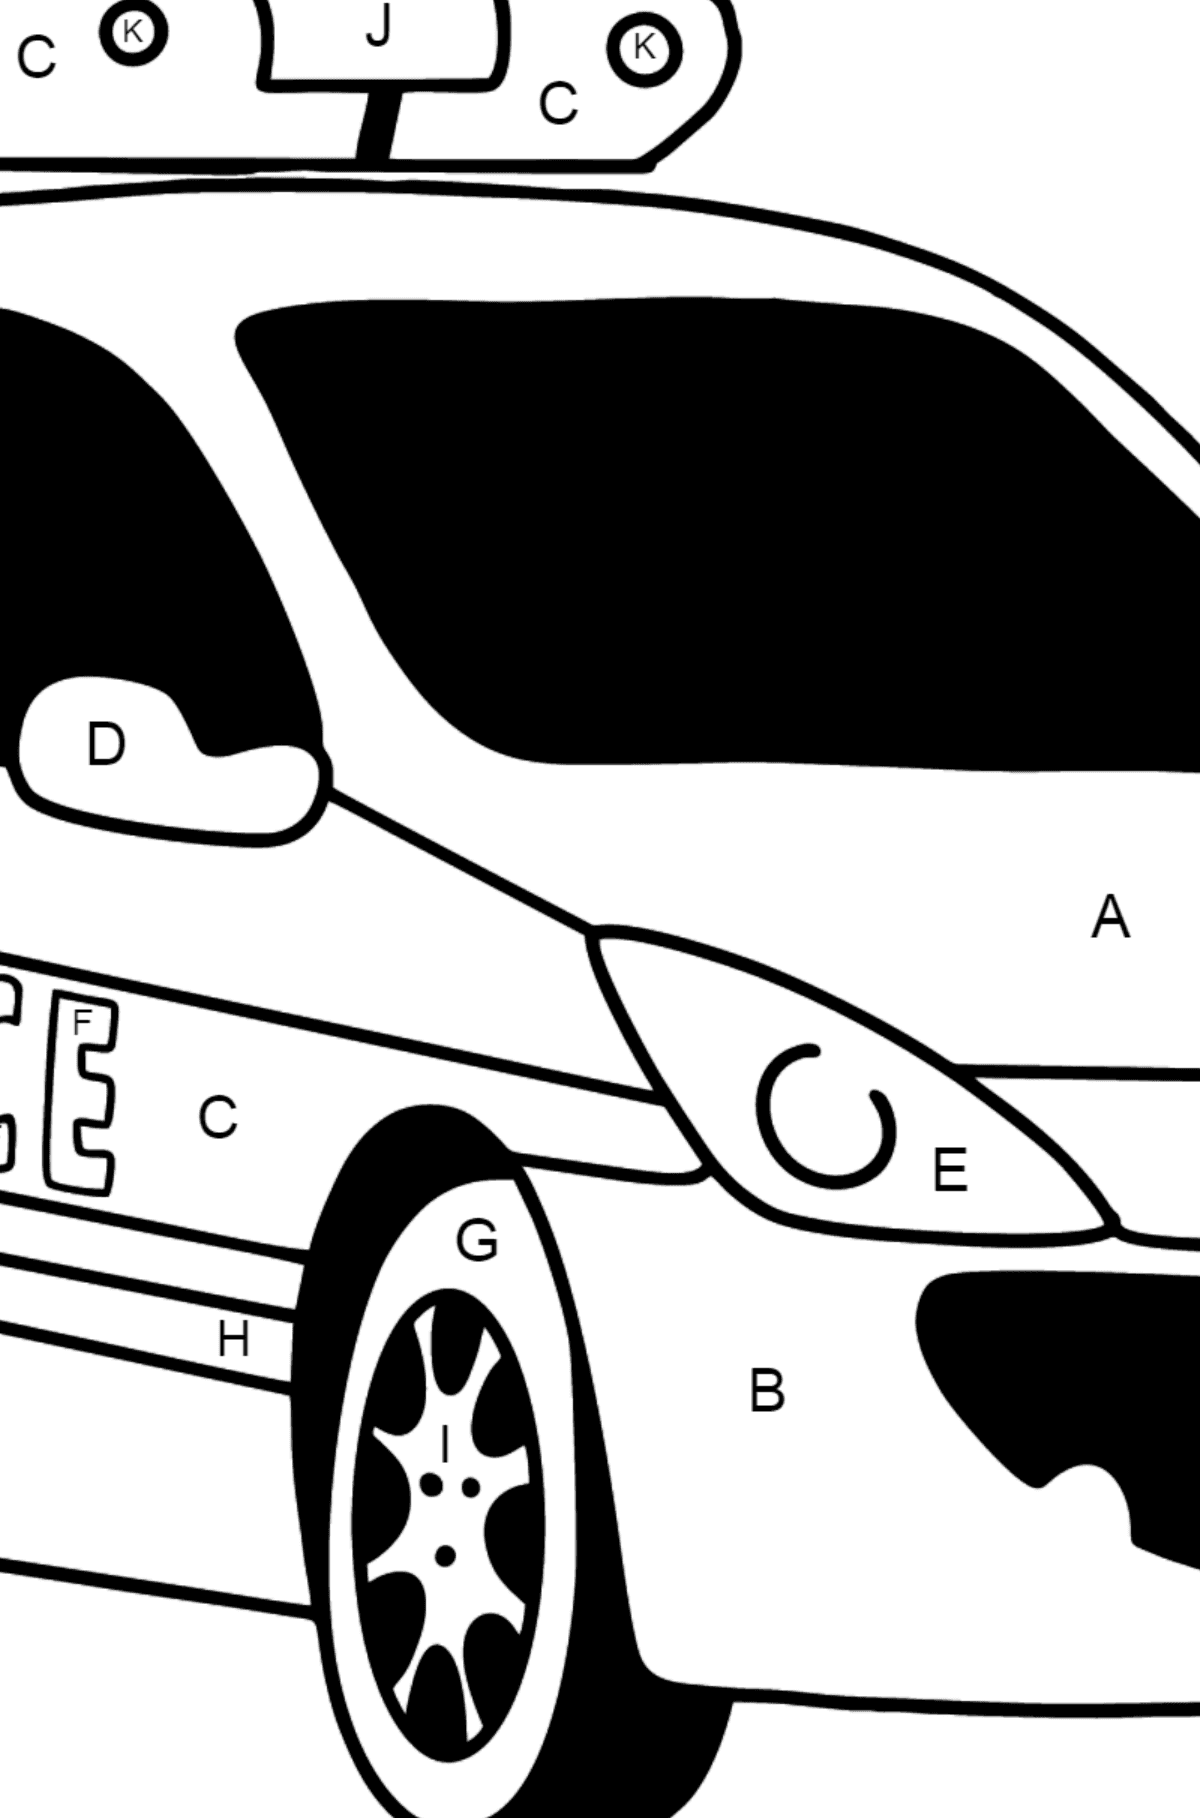 Police Car in France coloring page - Coloring by Letters for Kids